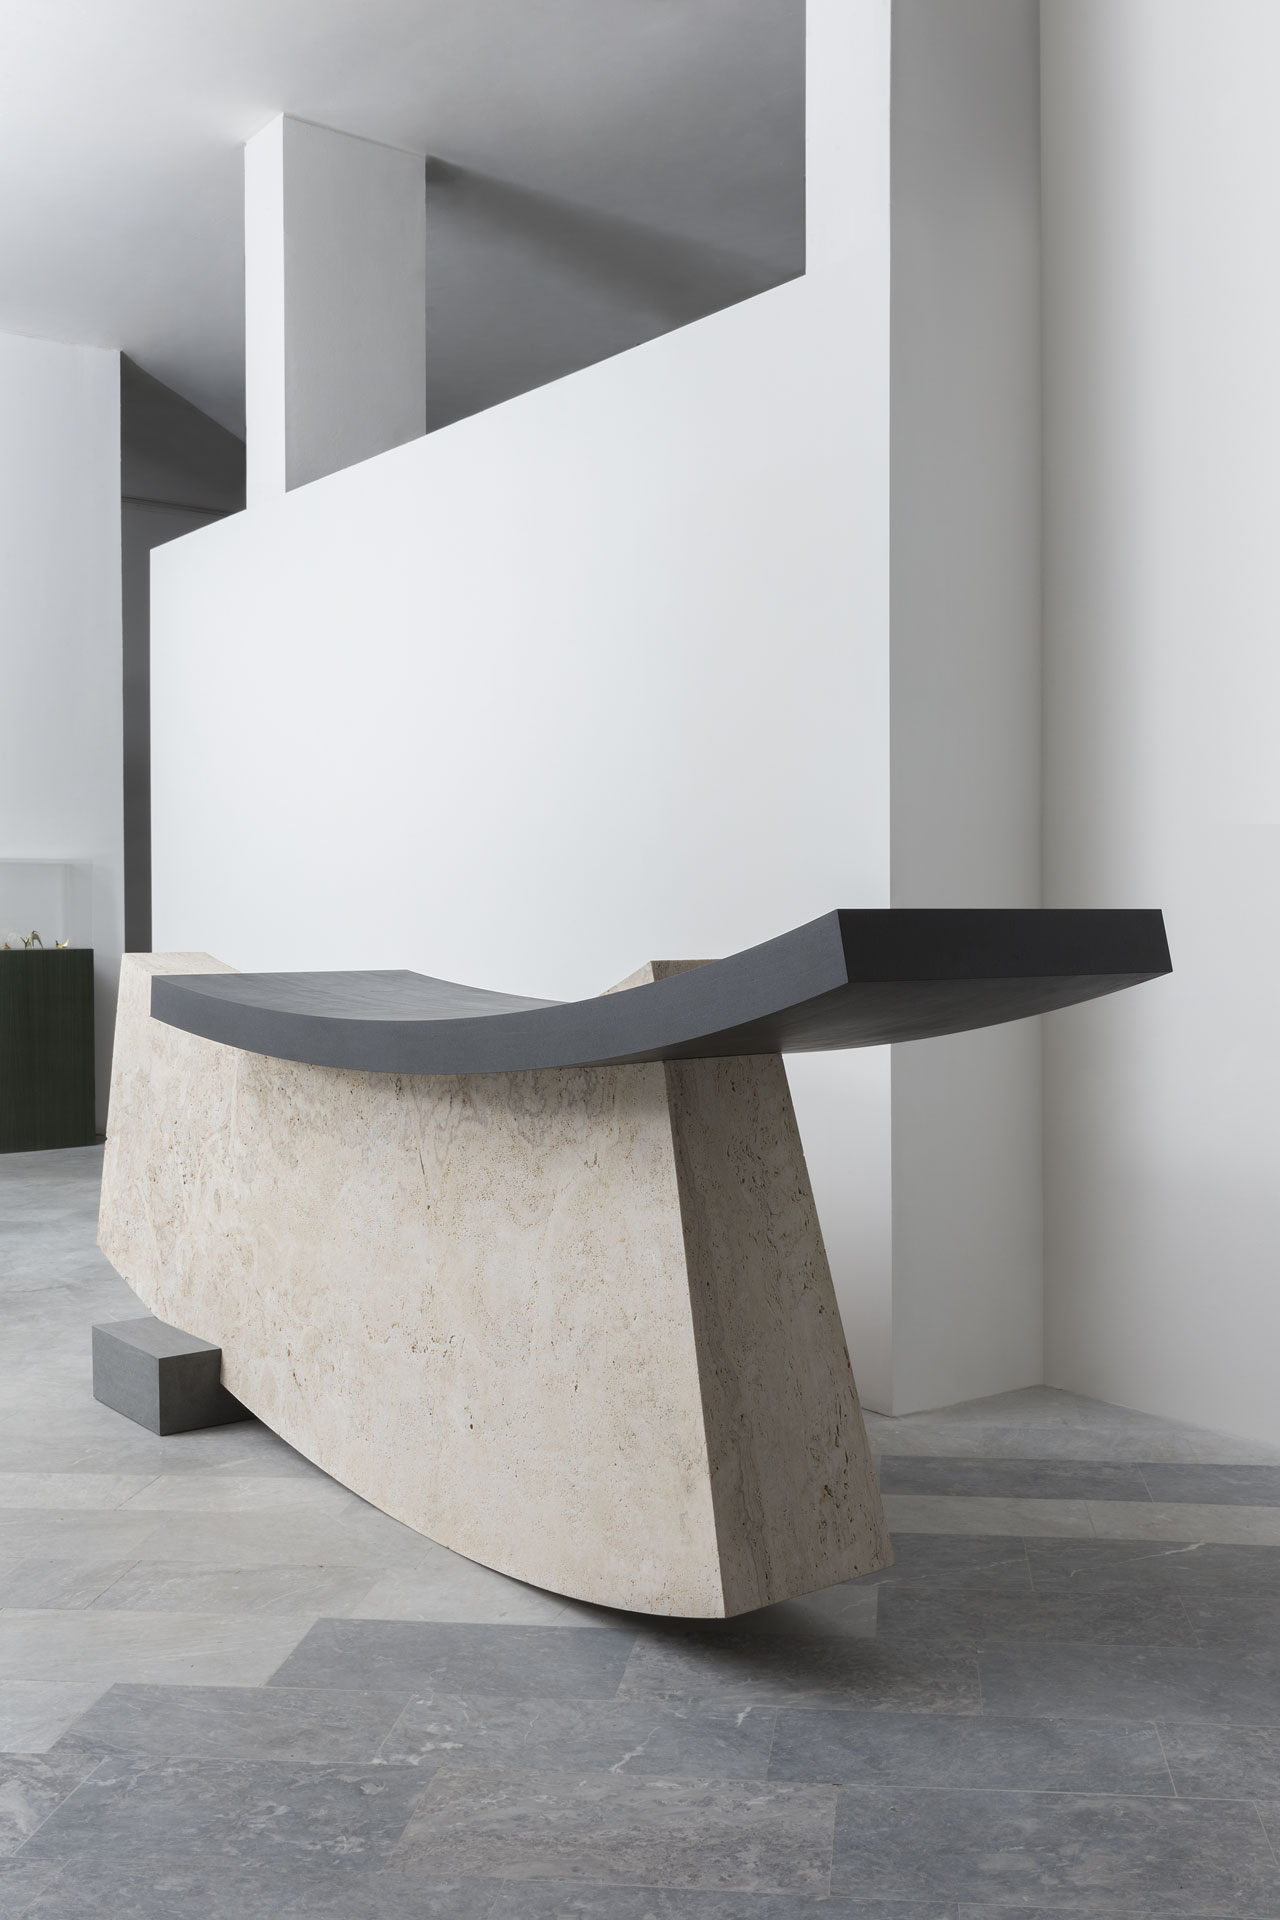 Reception desk byWonmin Park and Testi for the Wallpaper*Handmade 2016 collection.